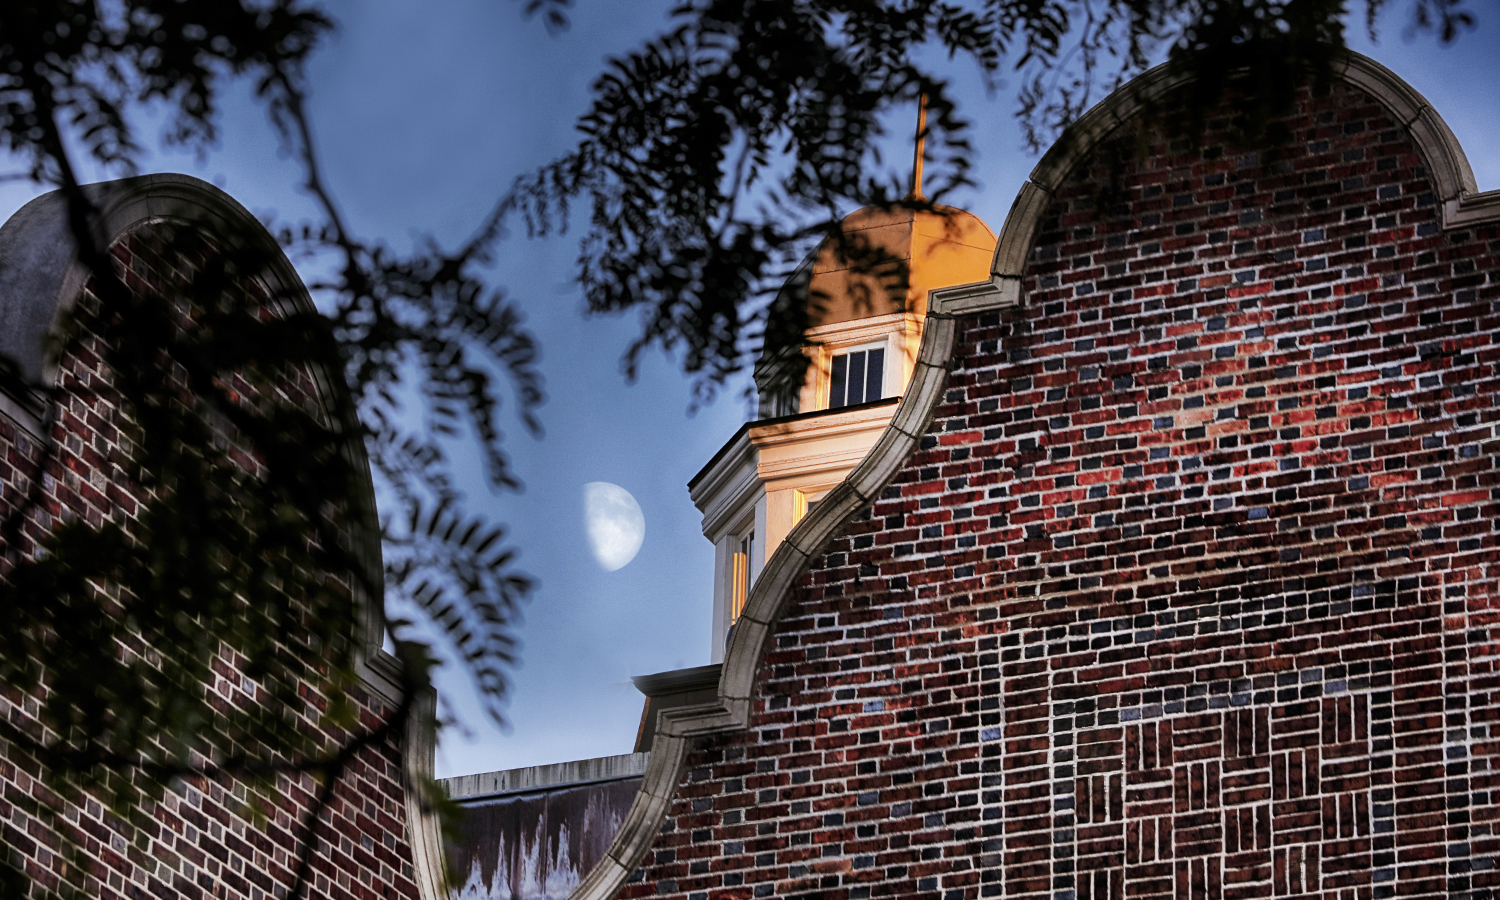 Moonrise over the cupola on top of Coxe Hall.